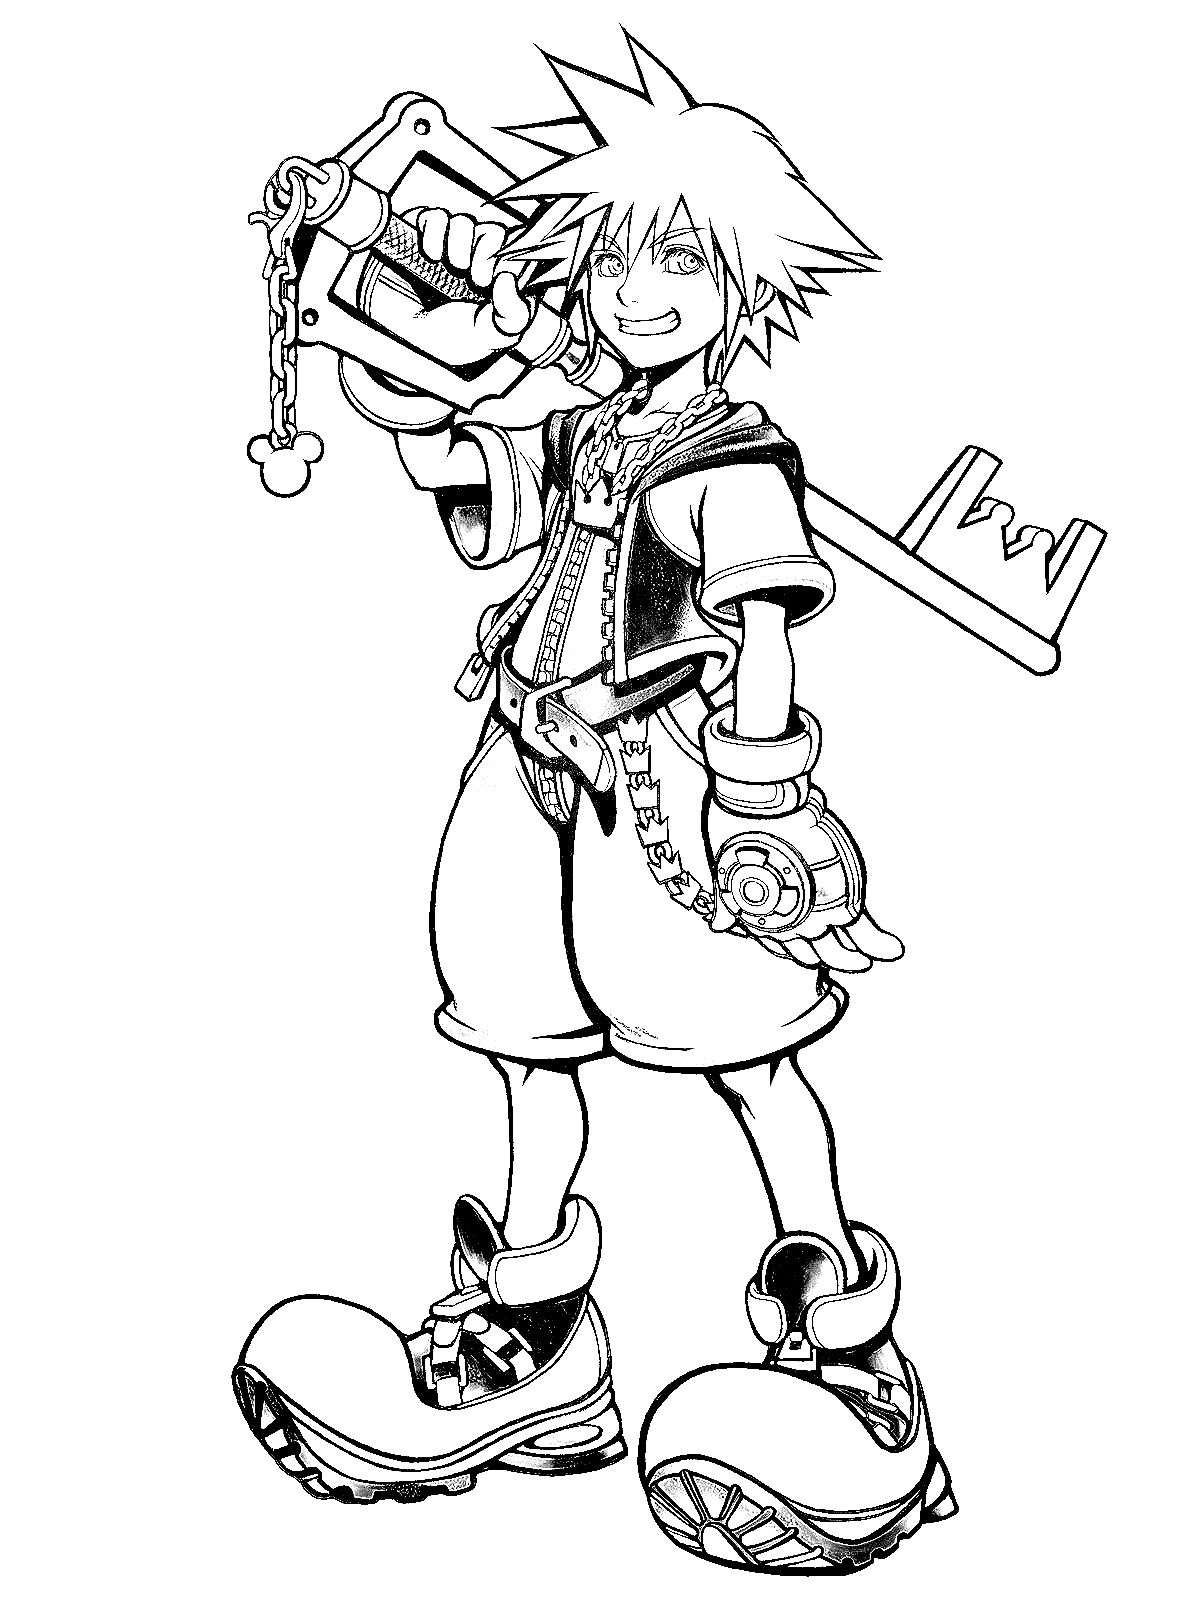 Sora in Kingdom Hearts by 222Shinta1 on DeviantArt